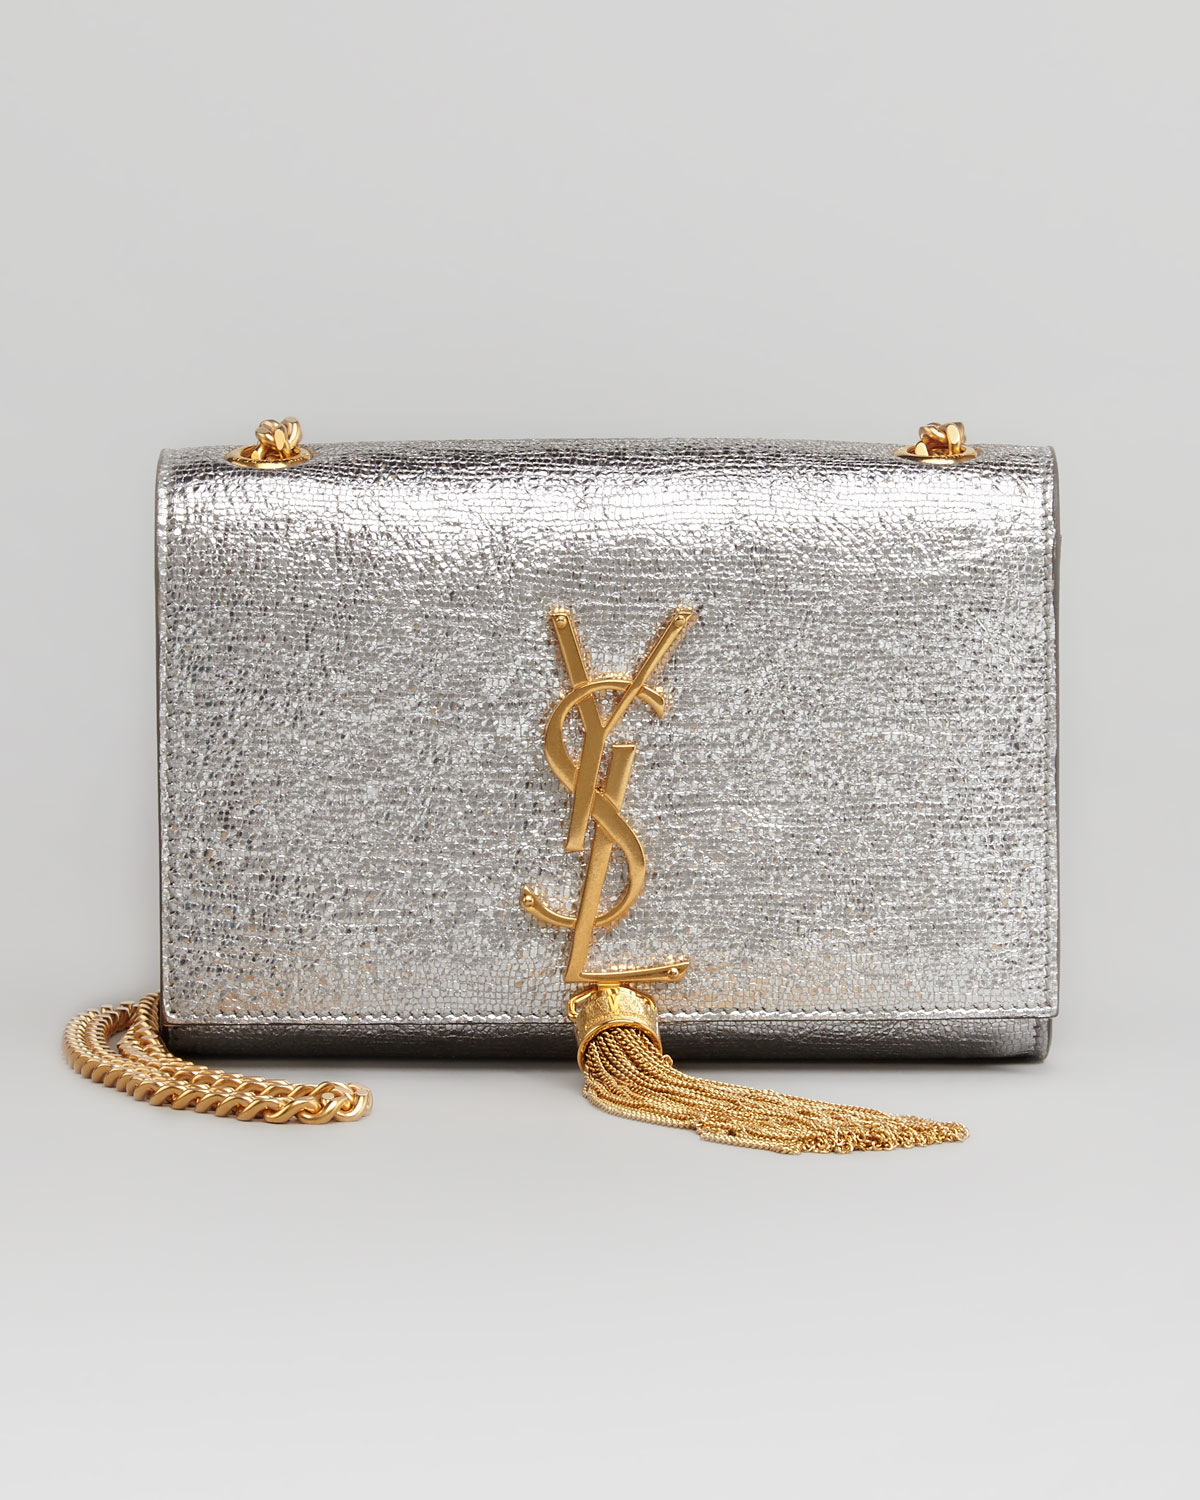 6e1ae28f7a24 Saint Laurent Classic Monogramme Clutch Bag Reference Guide ...